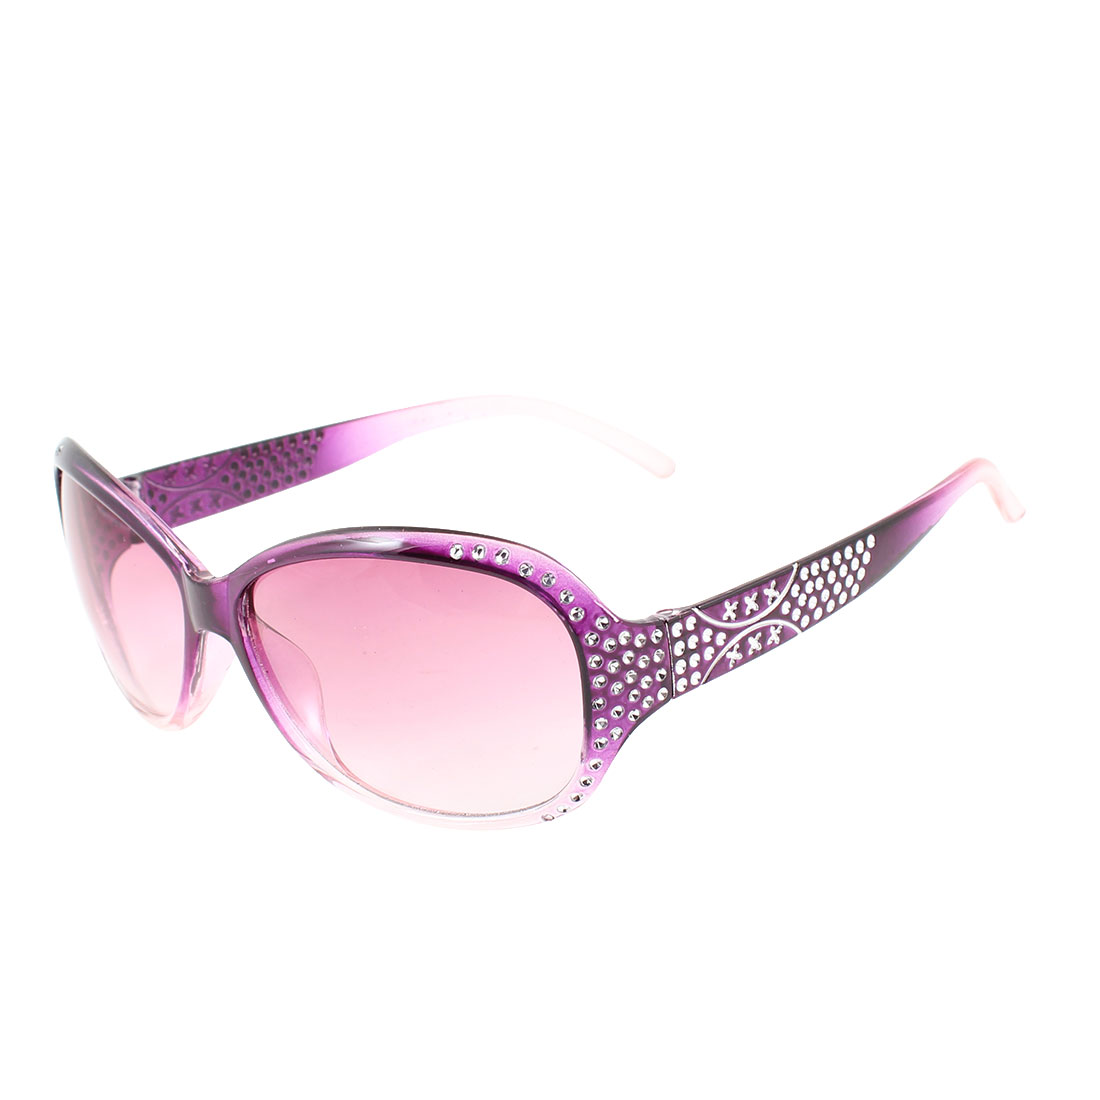 Purple Plastic Arm Full Rim Colored Lens Sunglasses Decor for Lady Women